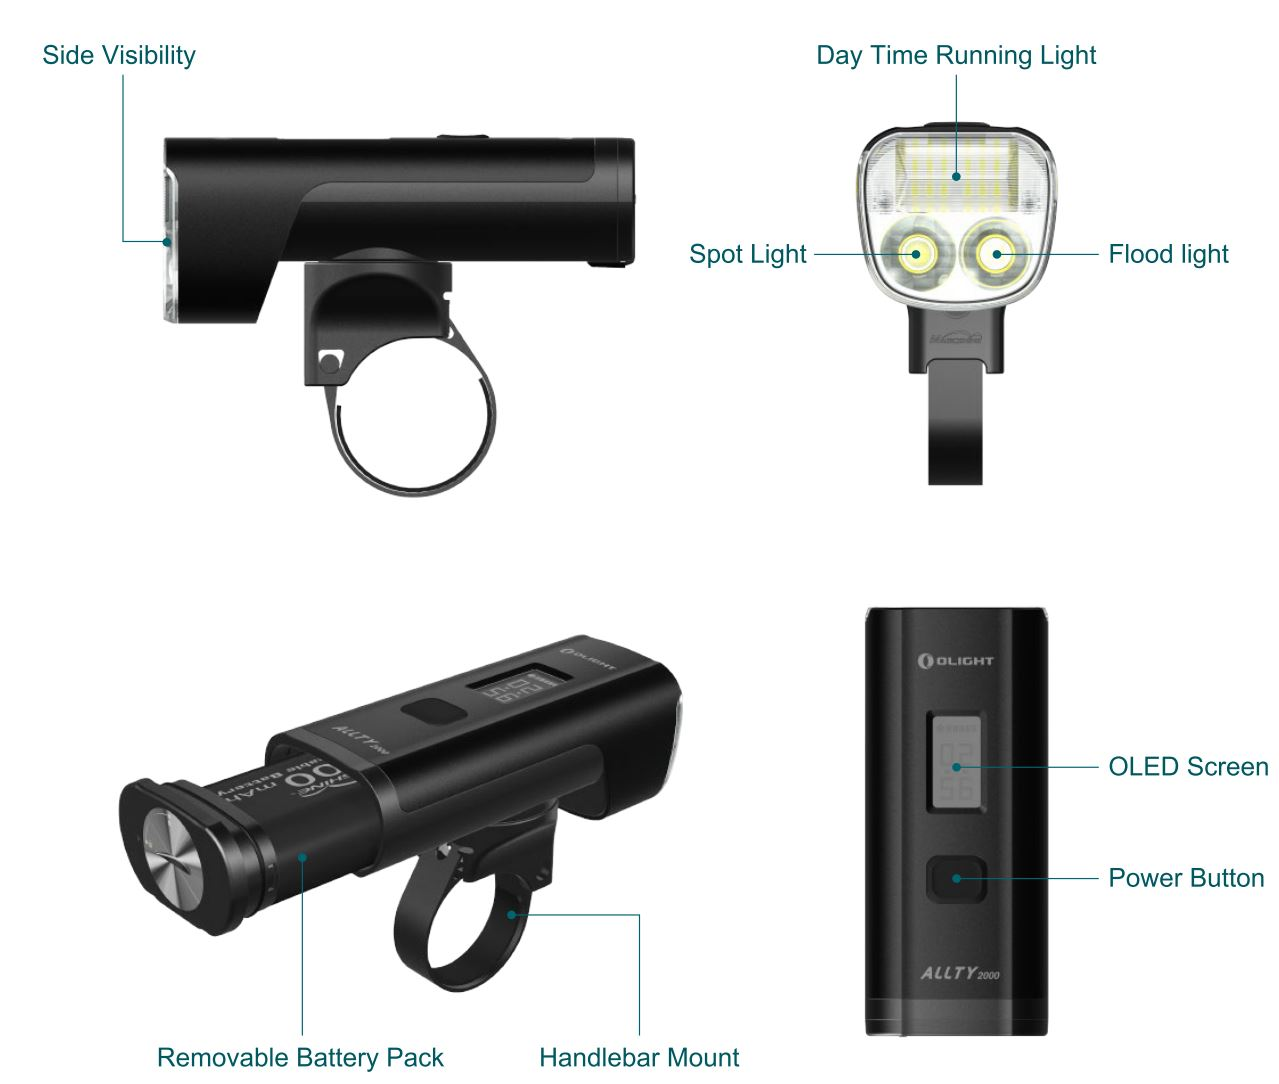 ALLTY2000 is a multifunctional bike light with maximum 2000 lumens of light output. High efficiency optical lens, the high side visibility design can increase the warning effect. Daytime running light will be easier to catch drivers and pedestrians' eye-drawing, hence to strengthen riding safety. Creative OLED screen can indicate lighting mode, battery level and available running time for all 17 brightness levels, thus to help you make better cycling plan. Removeable battery pack with two 3500mAh 18650 batteries. Choosable mounting methods, it can be installed on the computer mount or via GoPro camera mount with Garmin mount. Memory function always keeps the light in the previously used brightness level when being turned on again. IPX 5 waterproof rate, the product will not be affected with water sprayed from all directions.